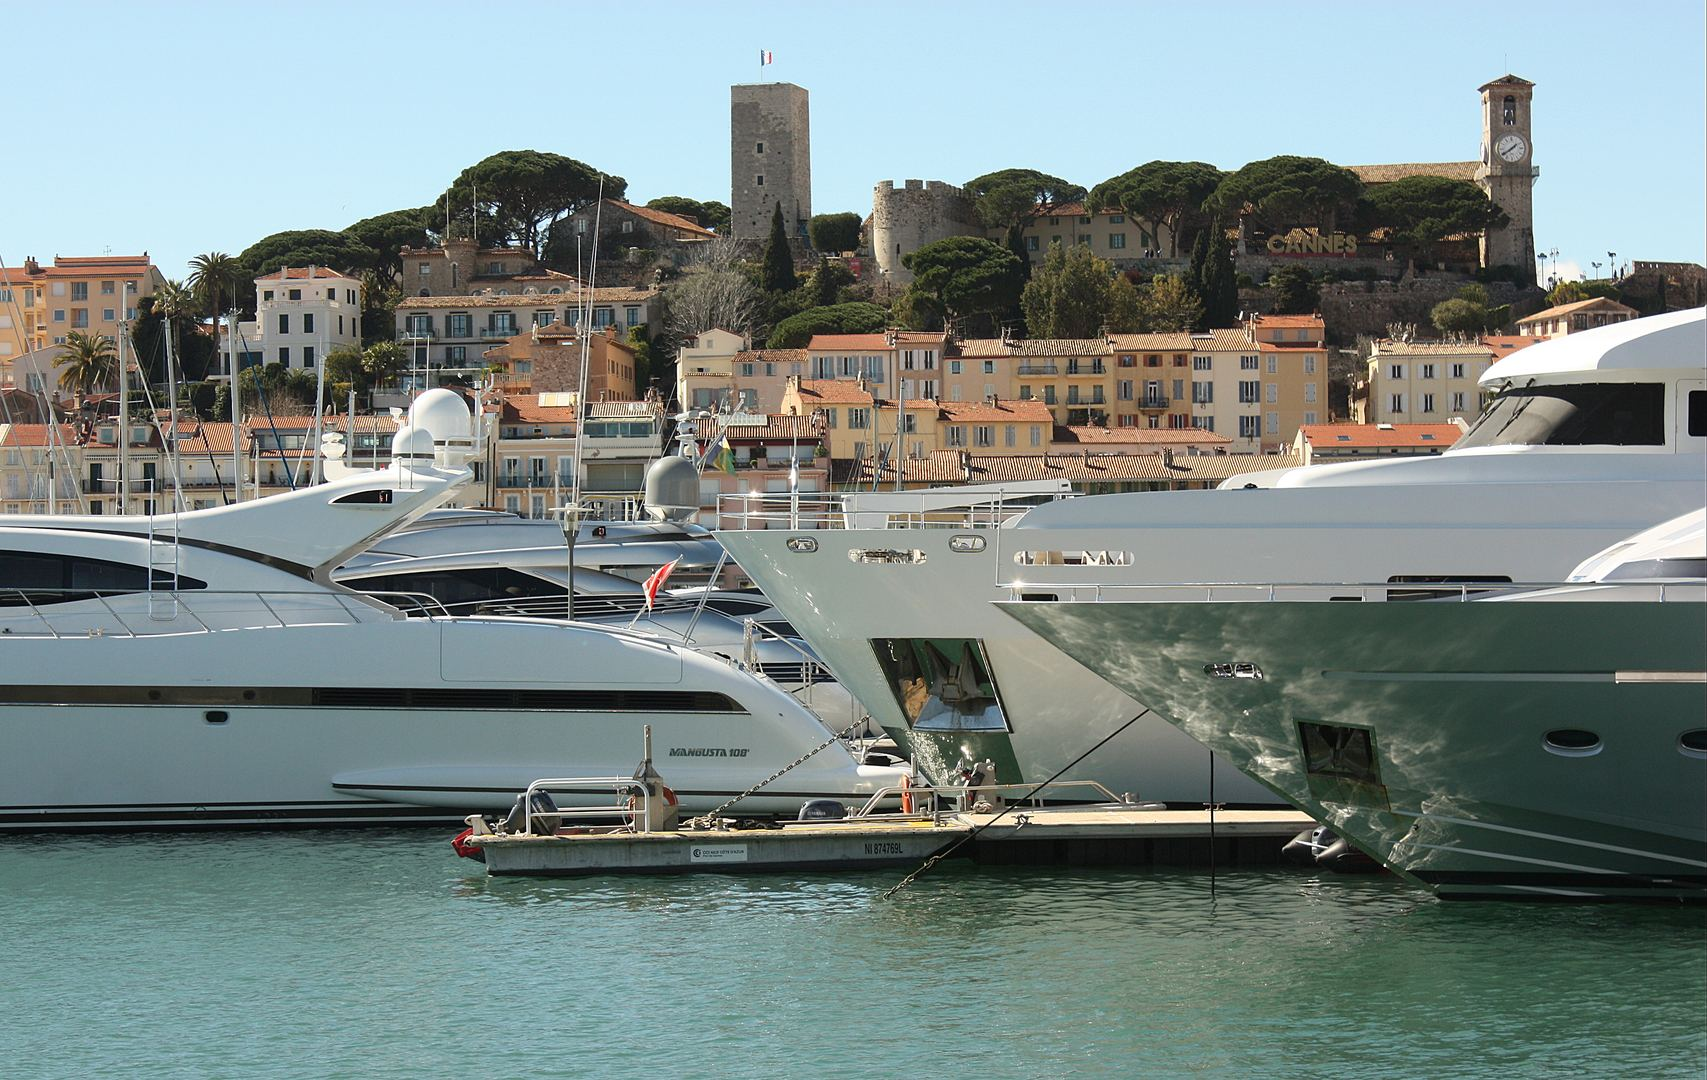 Cannes 03